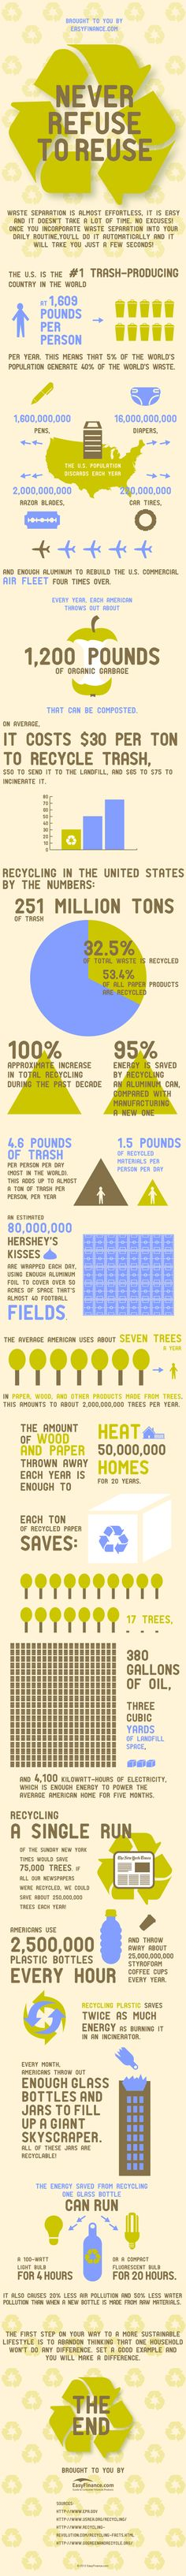 Never Refuse to Reuse infographic for Environment bulletin board